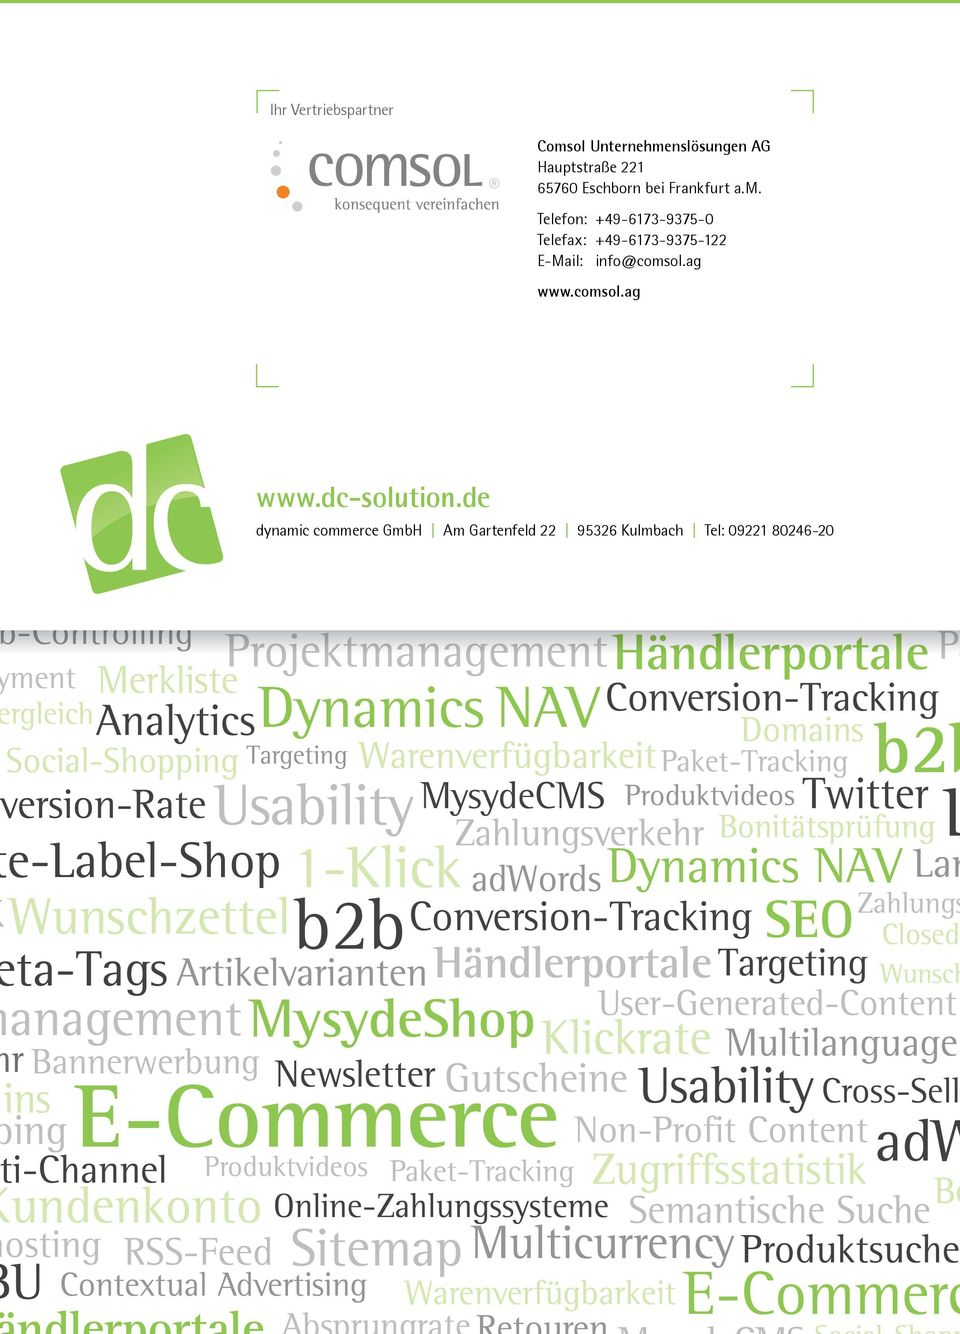 ag bshops al Advertising -Controlling Merkliste ment rgleich Social-Shopping osting dynamic commerce GmbH Am Gartenfeld 22 95326 Kulmbach Tel: 09221 80246-20 White-Label-Shop E-Comme Branding